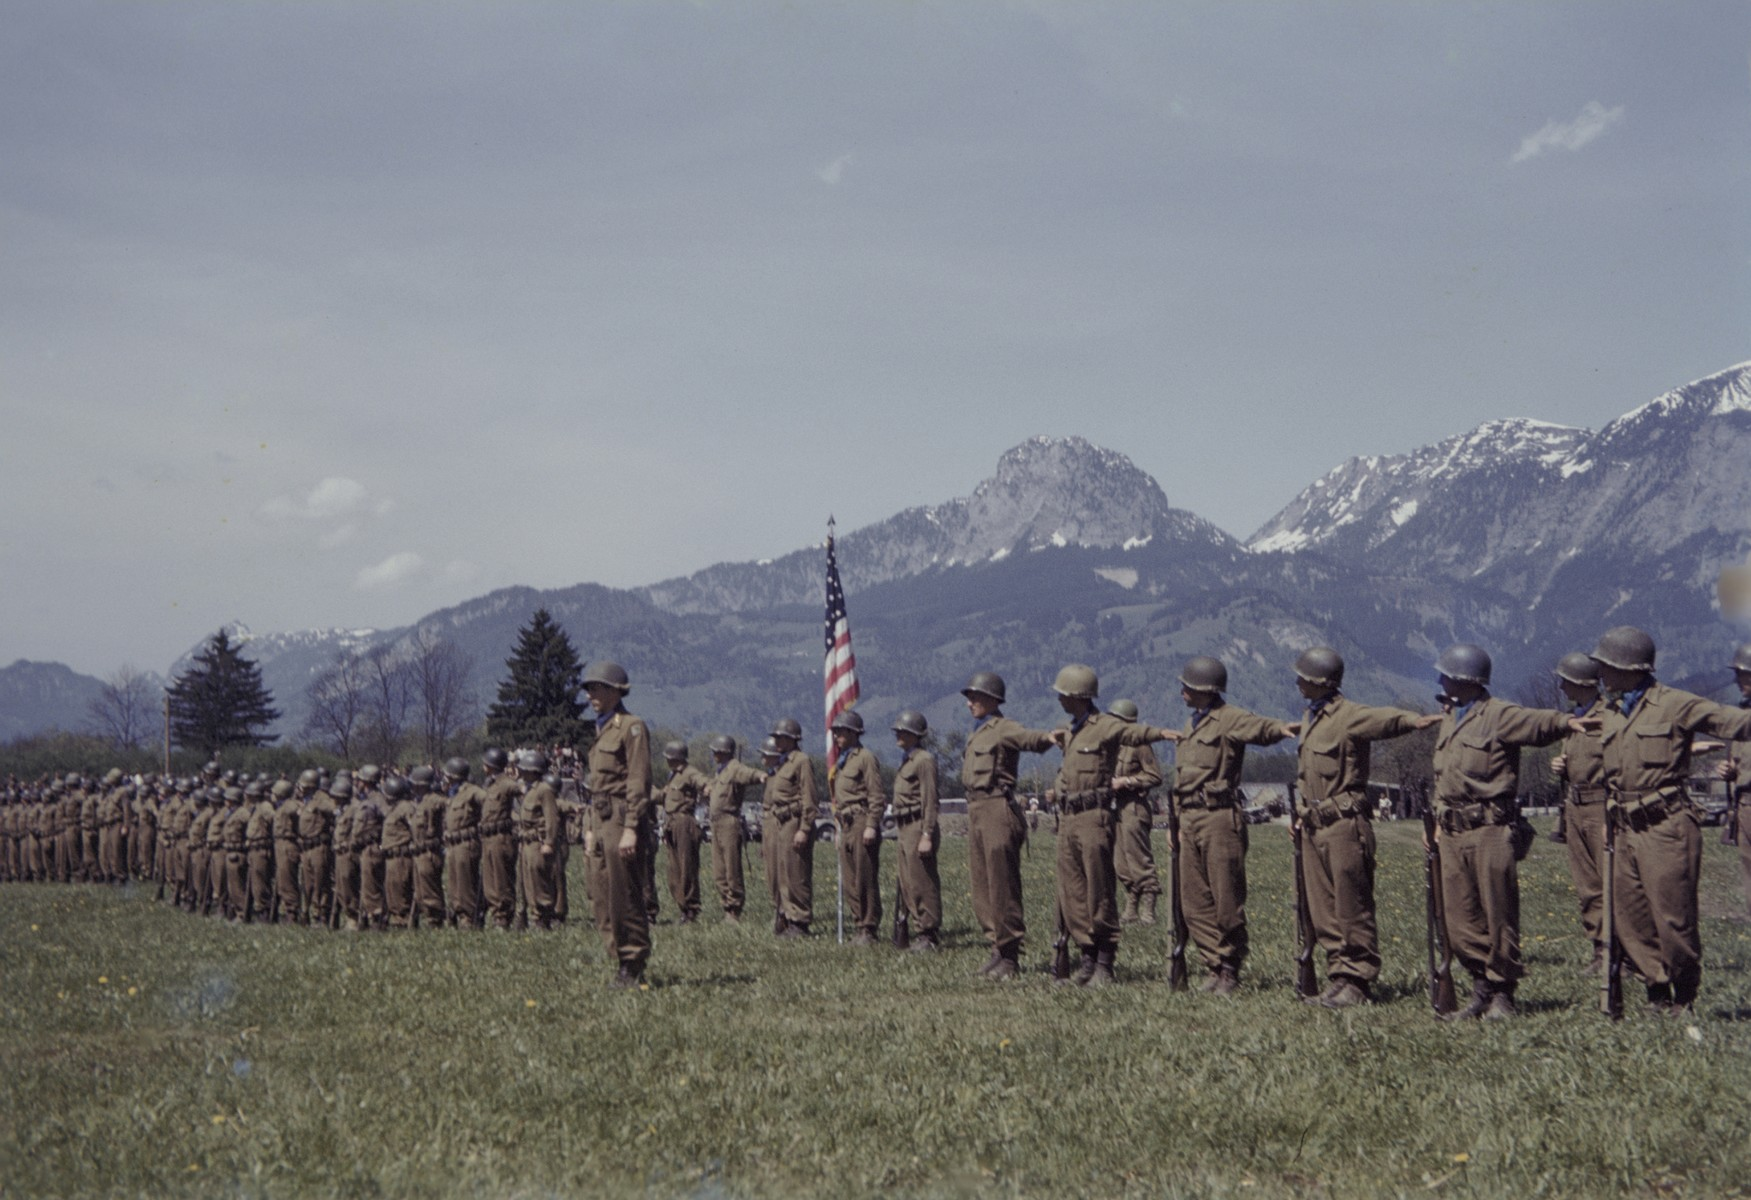 Members of the U.S. 9th Armored Division meet up with units of the Red Army near Linz, Austria